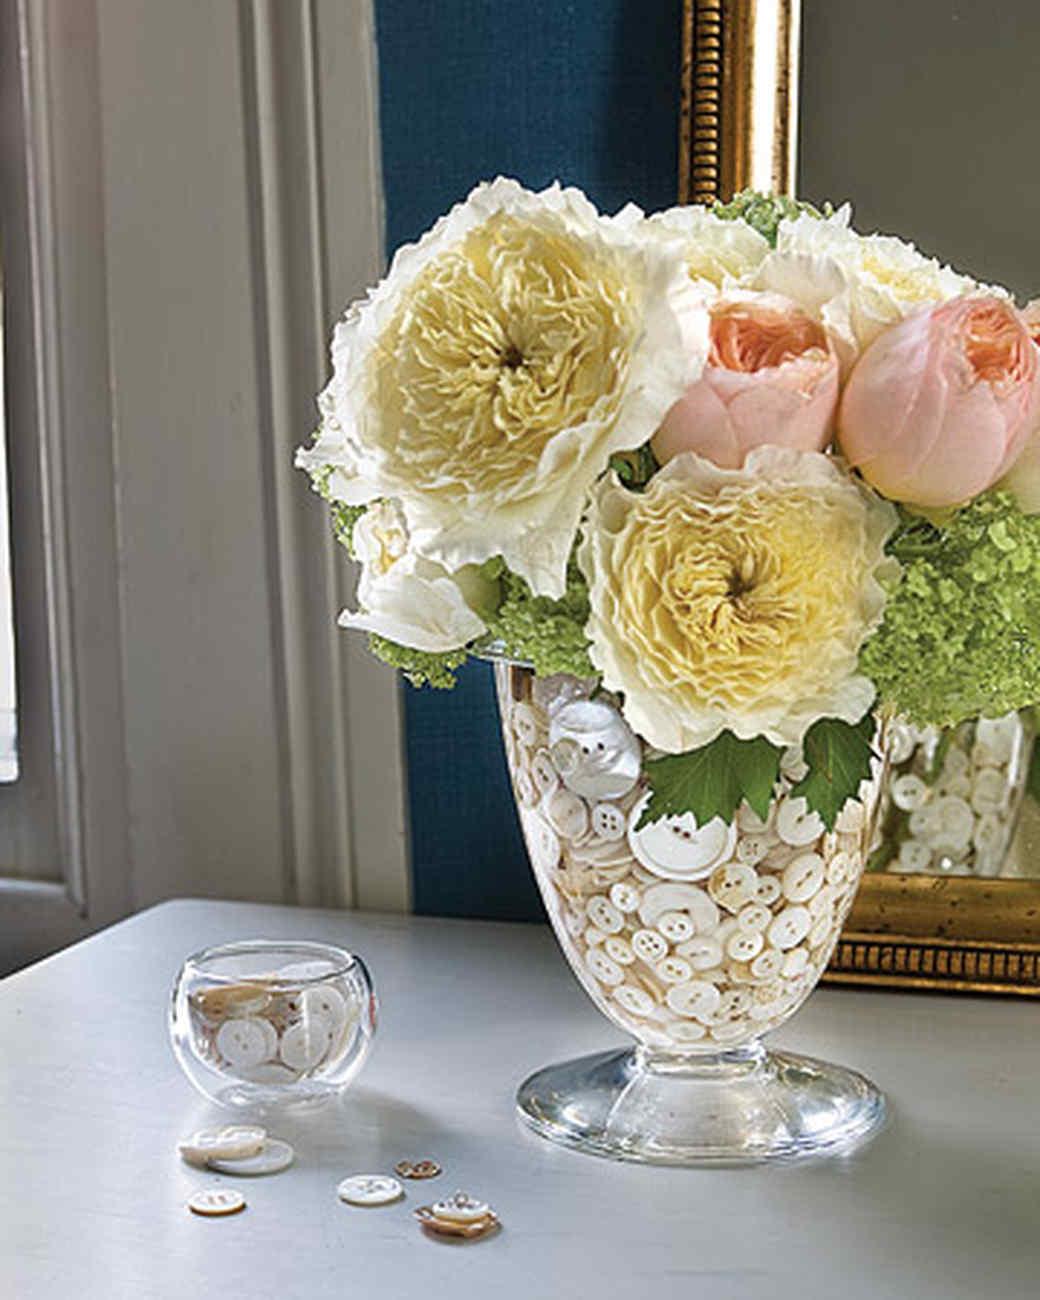 Beyond the Bouquet: 10 Unique Ways to Incorporate Flowers into Your Wedding Day Beyond the Bouquet: 10 Unique Ways to Incorporate Flowers into Your Wedding Day new foto